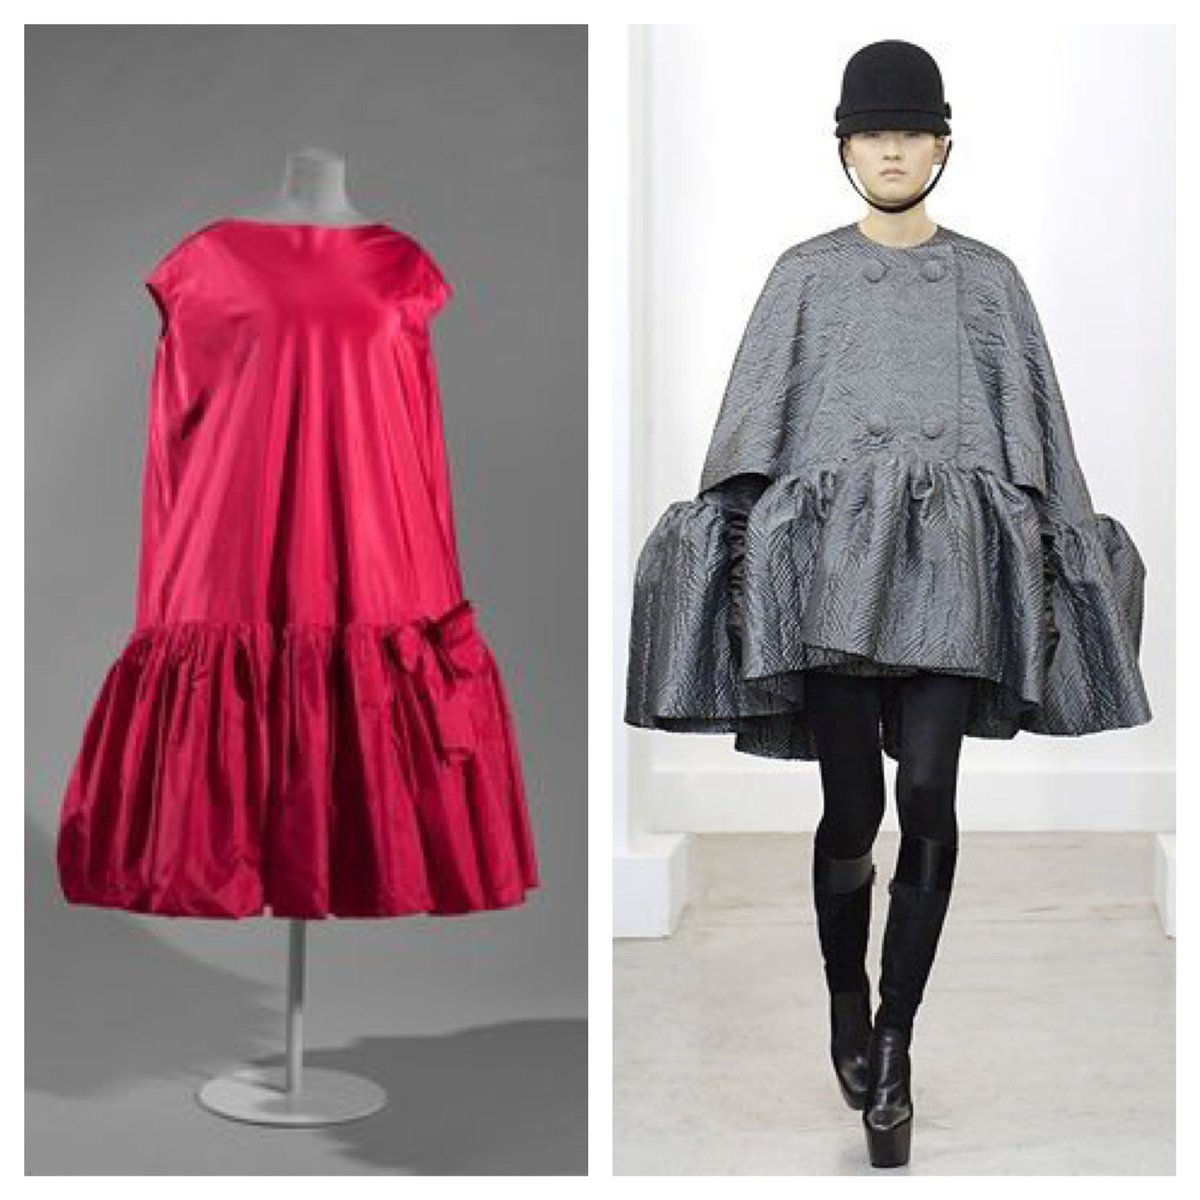 Inside The Mood On Twitter From The Past Balenciaga Babydoll